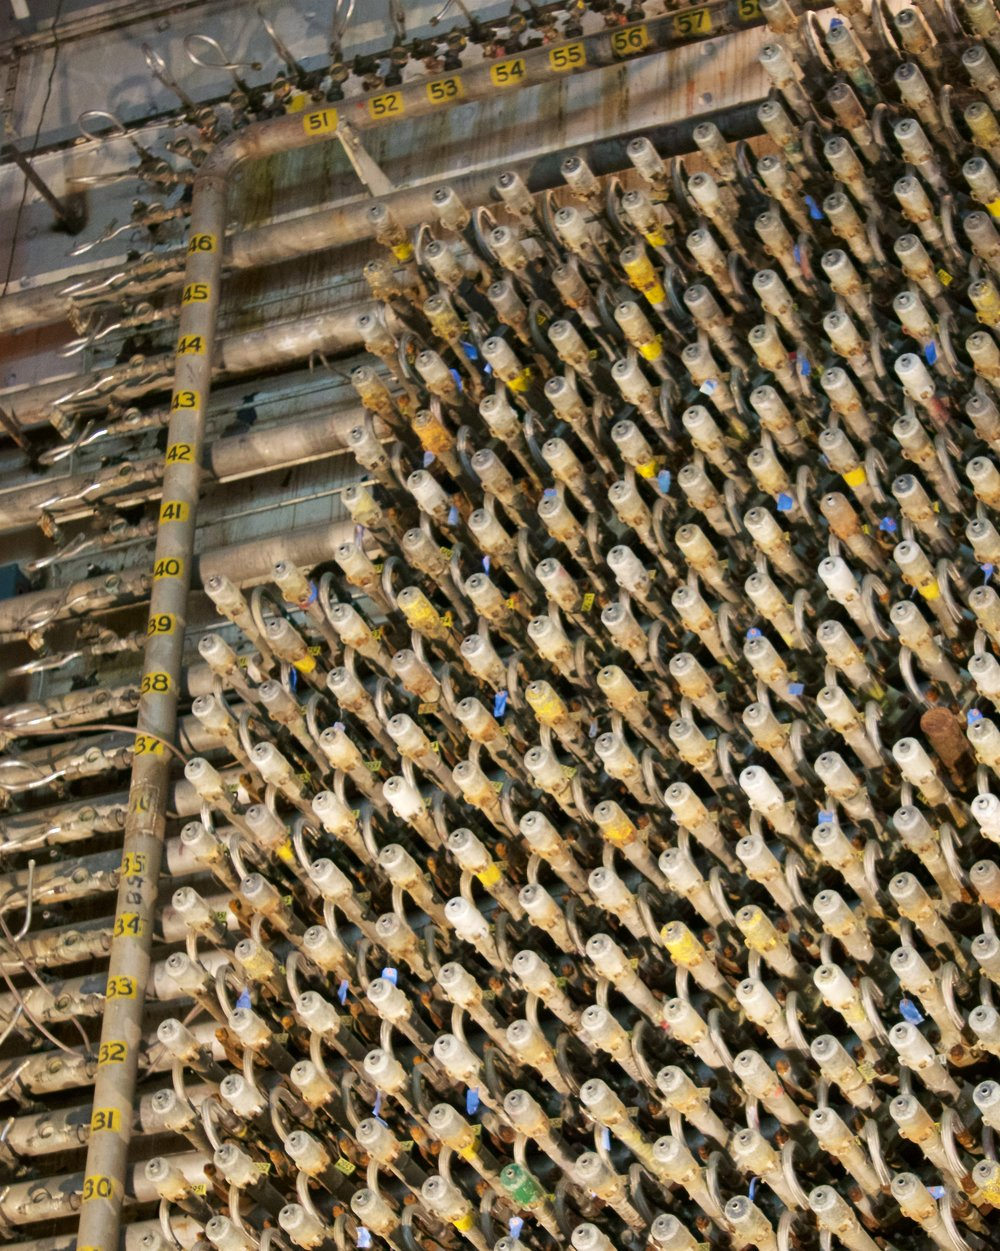 Several of the over 2,000 tubes in the reactor, and the numbers used to identify each tube in the grid